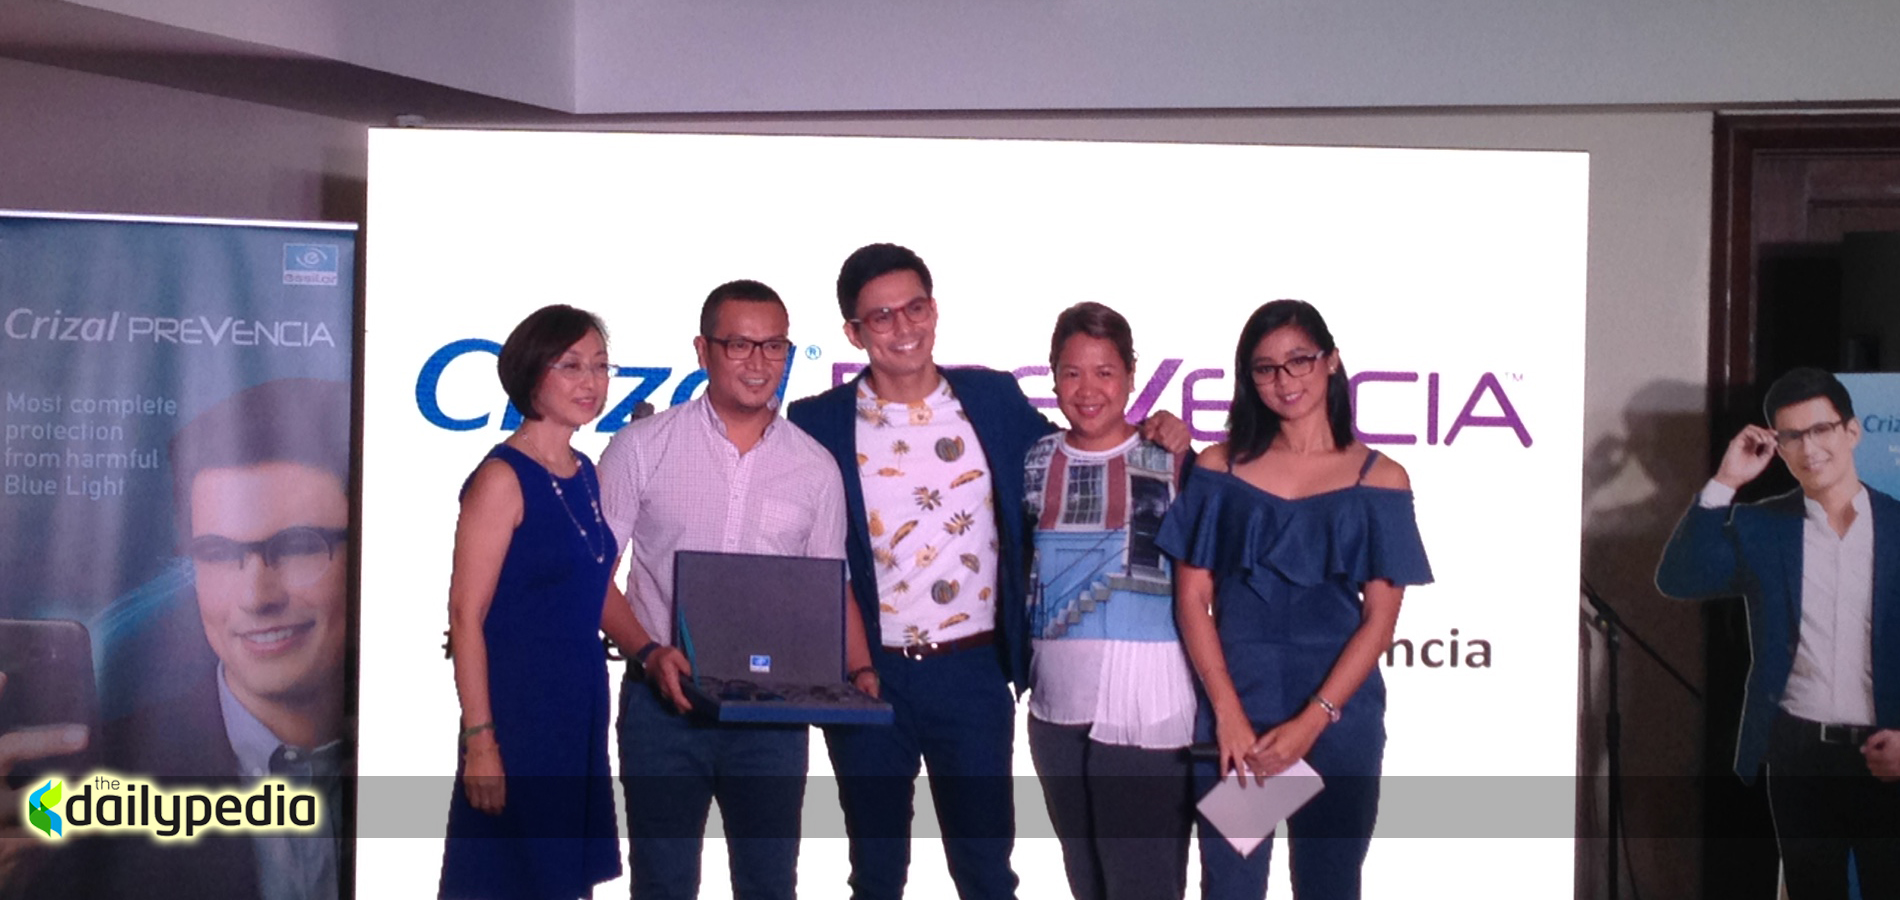 5a0b47f045 Essilor Philippines Launches Tom Rodriguez As Their New Brand Ambassador  With Crizal Prevencia